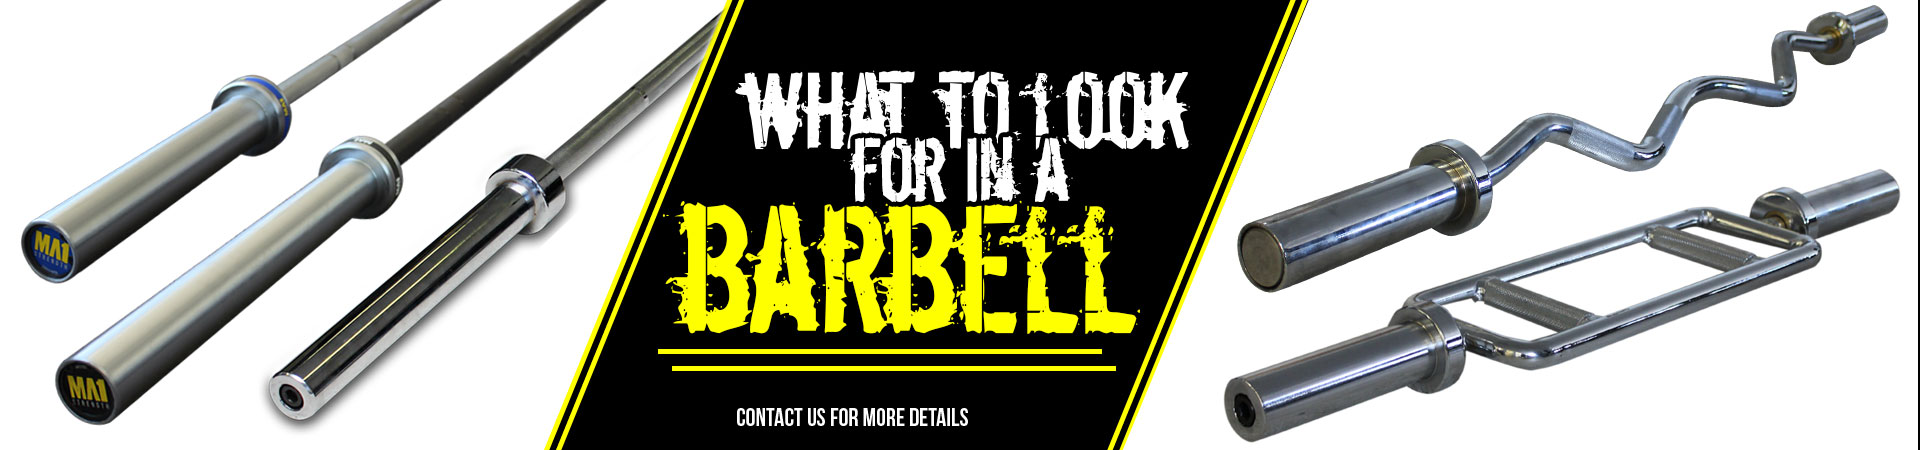 What to look for in a barbell?